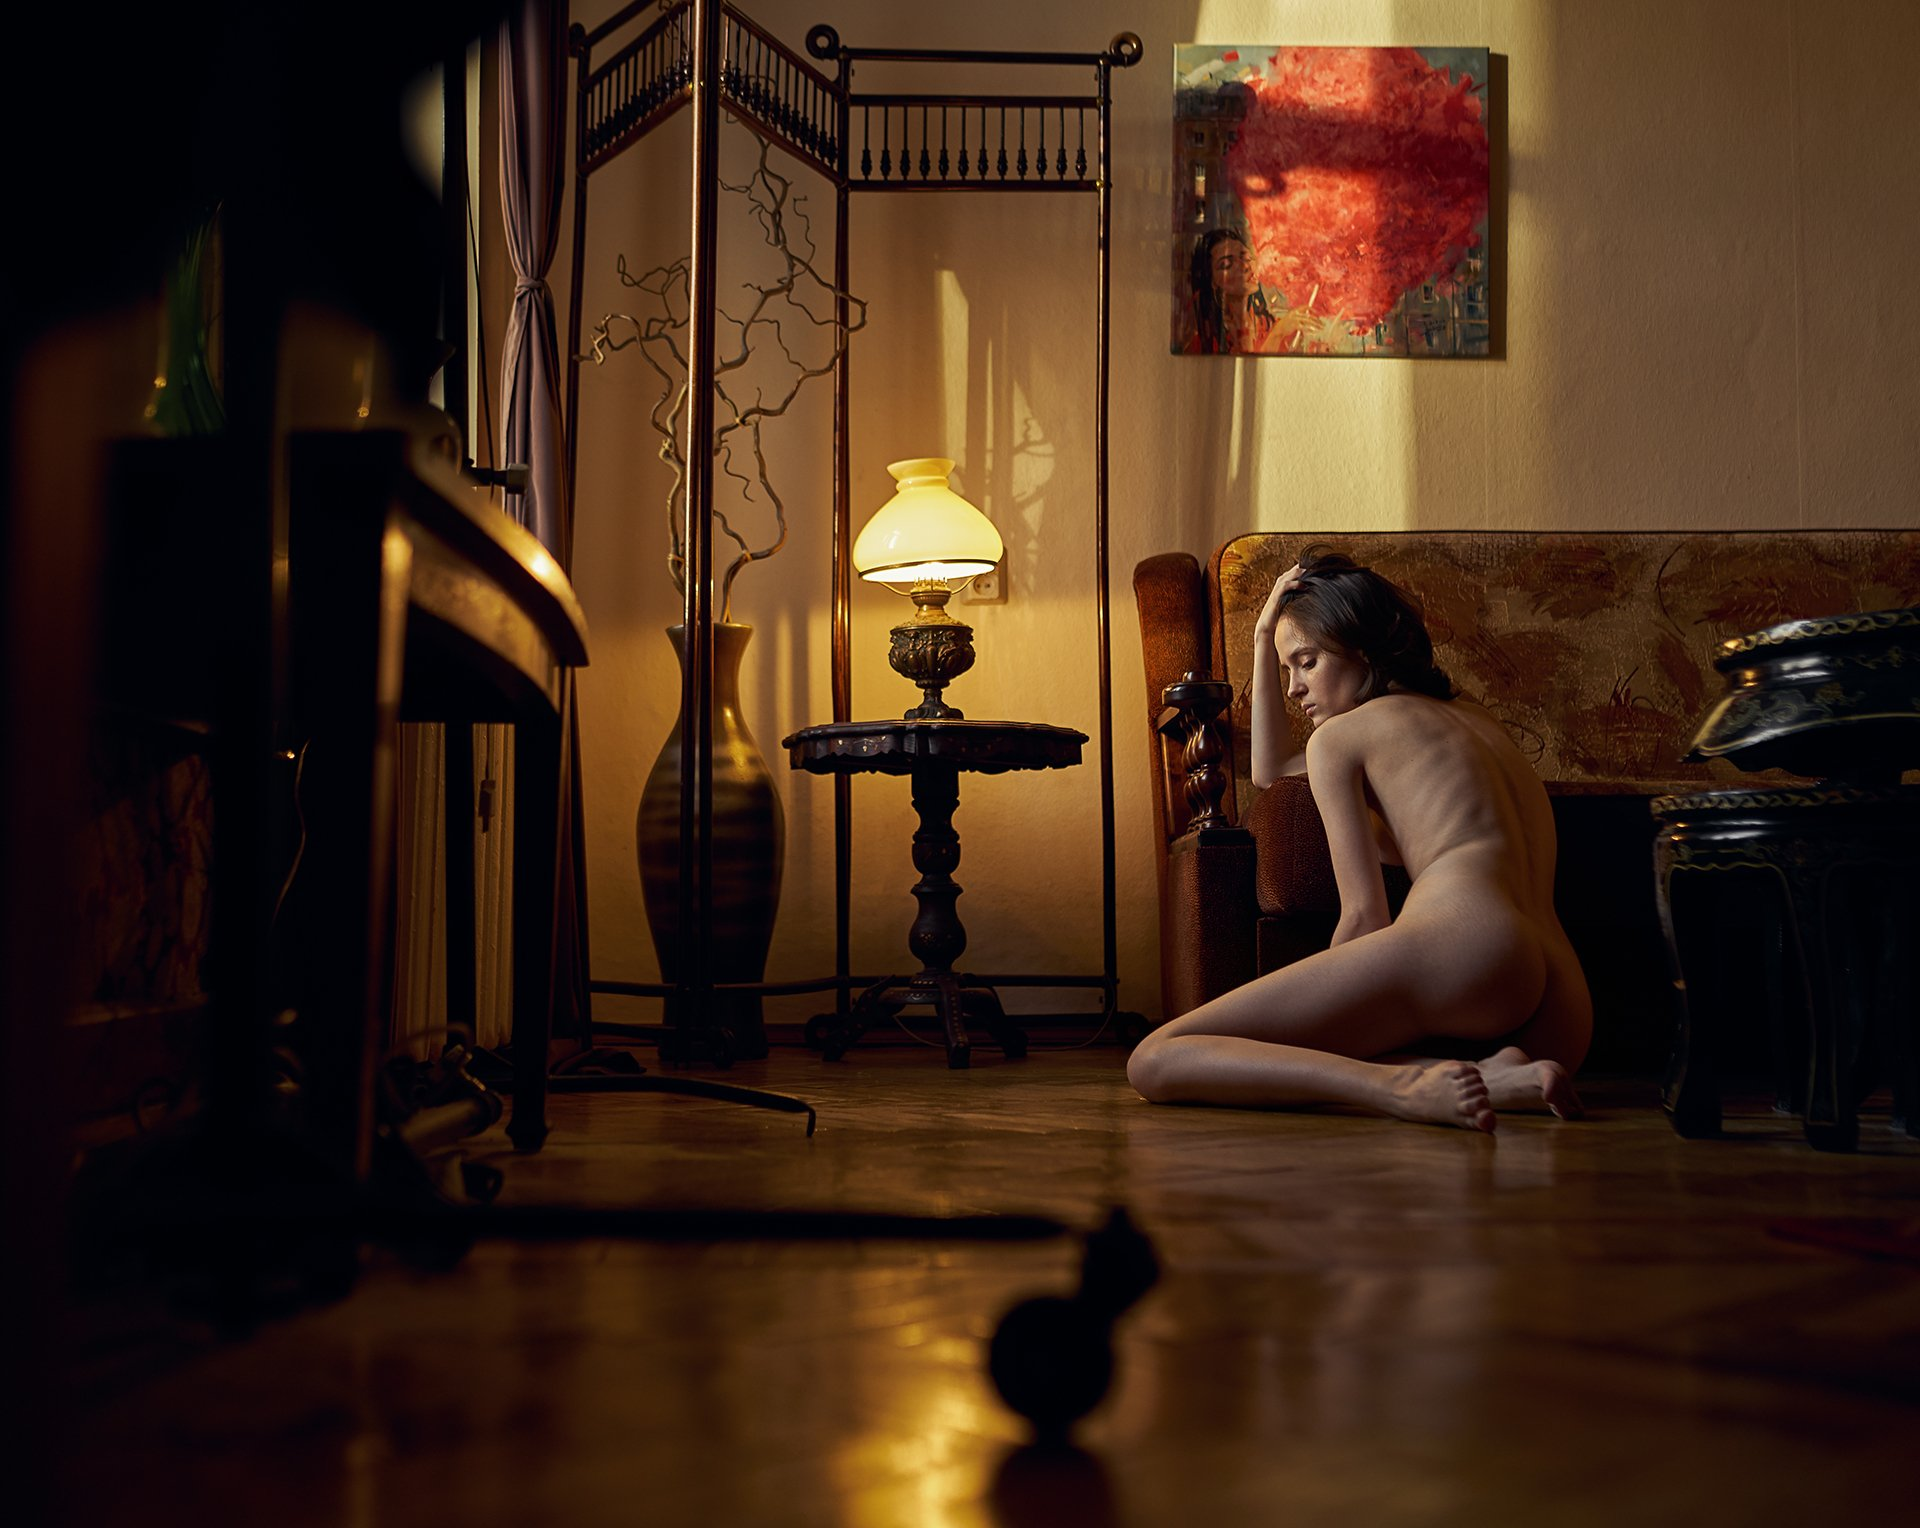 girl, nude, naked, natural light, at home, saint-petersburg, indoors, spb, lamp, antique,, Роман Филиппов